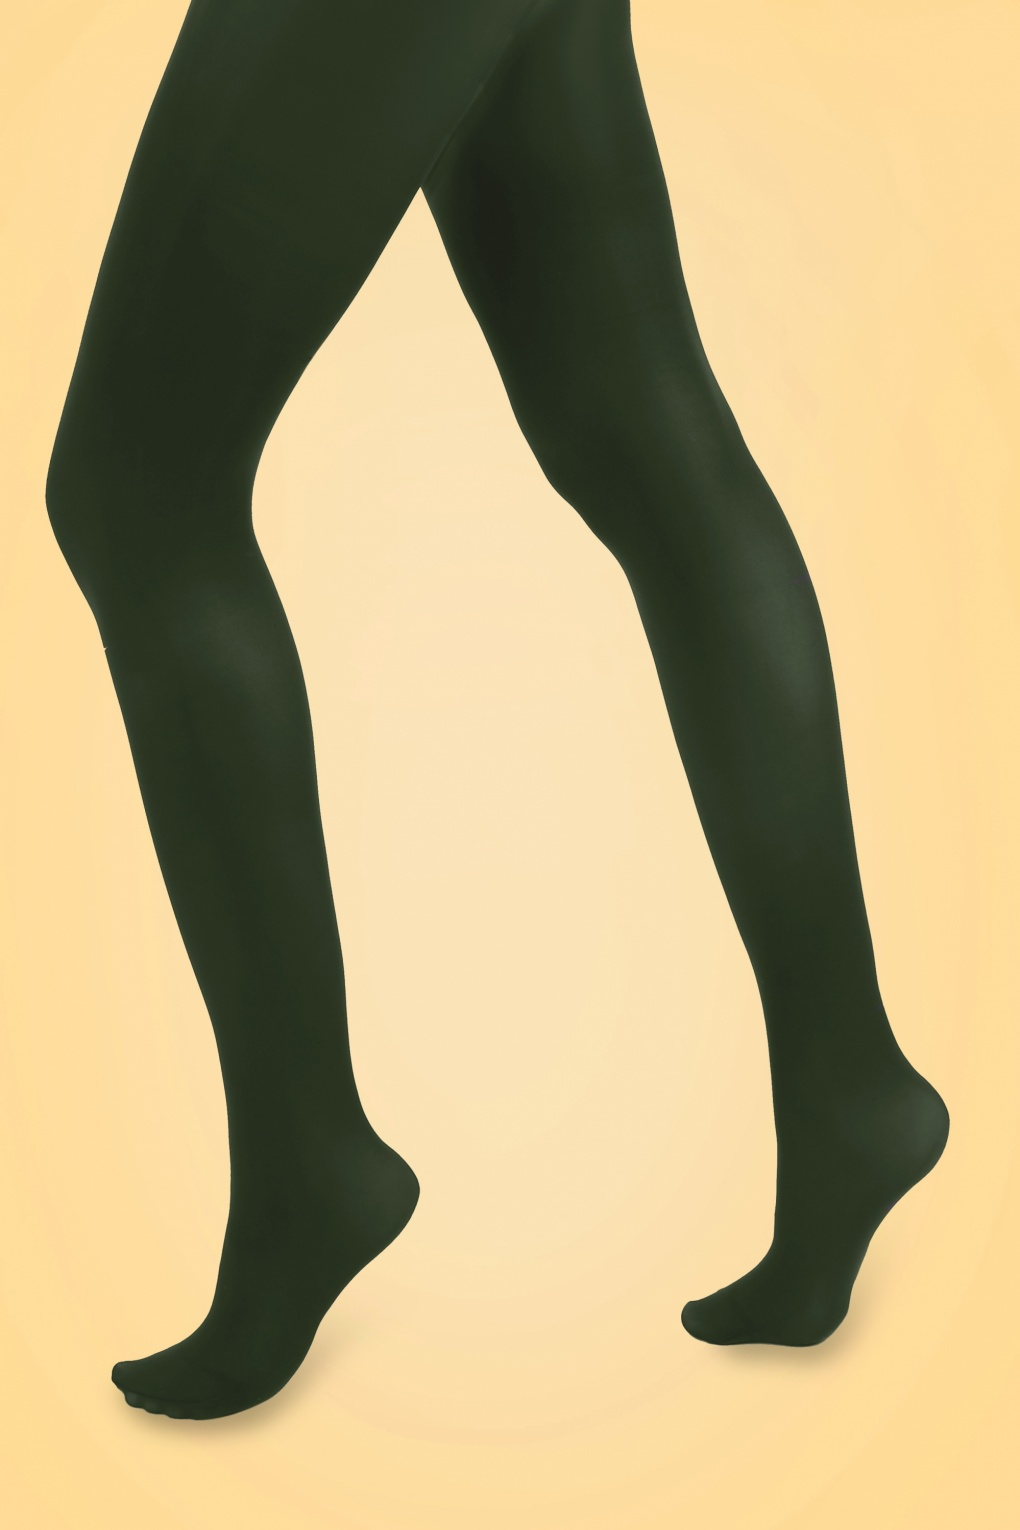 1960s Tights, Stockings, Panty Hose, Knee High Socks 60s Opaque Tights in Forest Green £7.07 AT vintagedancer.com